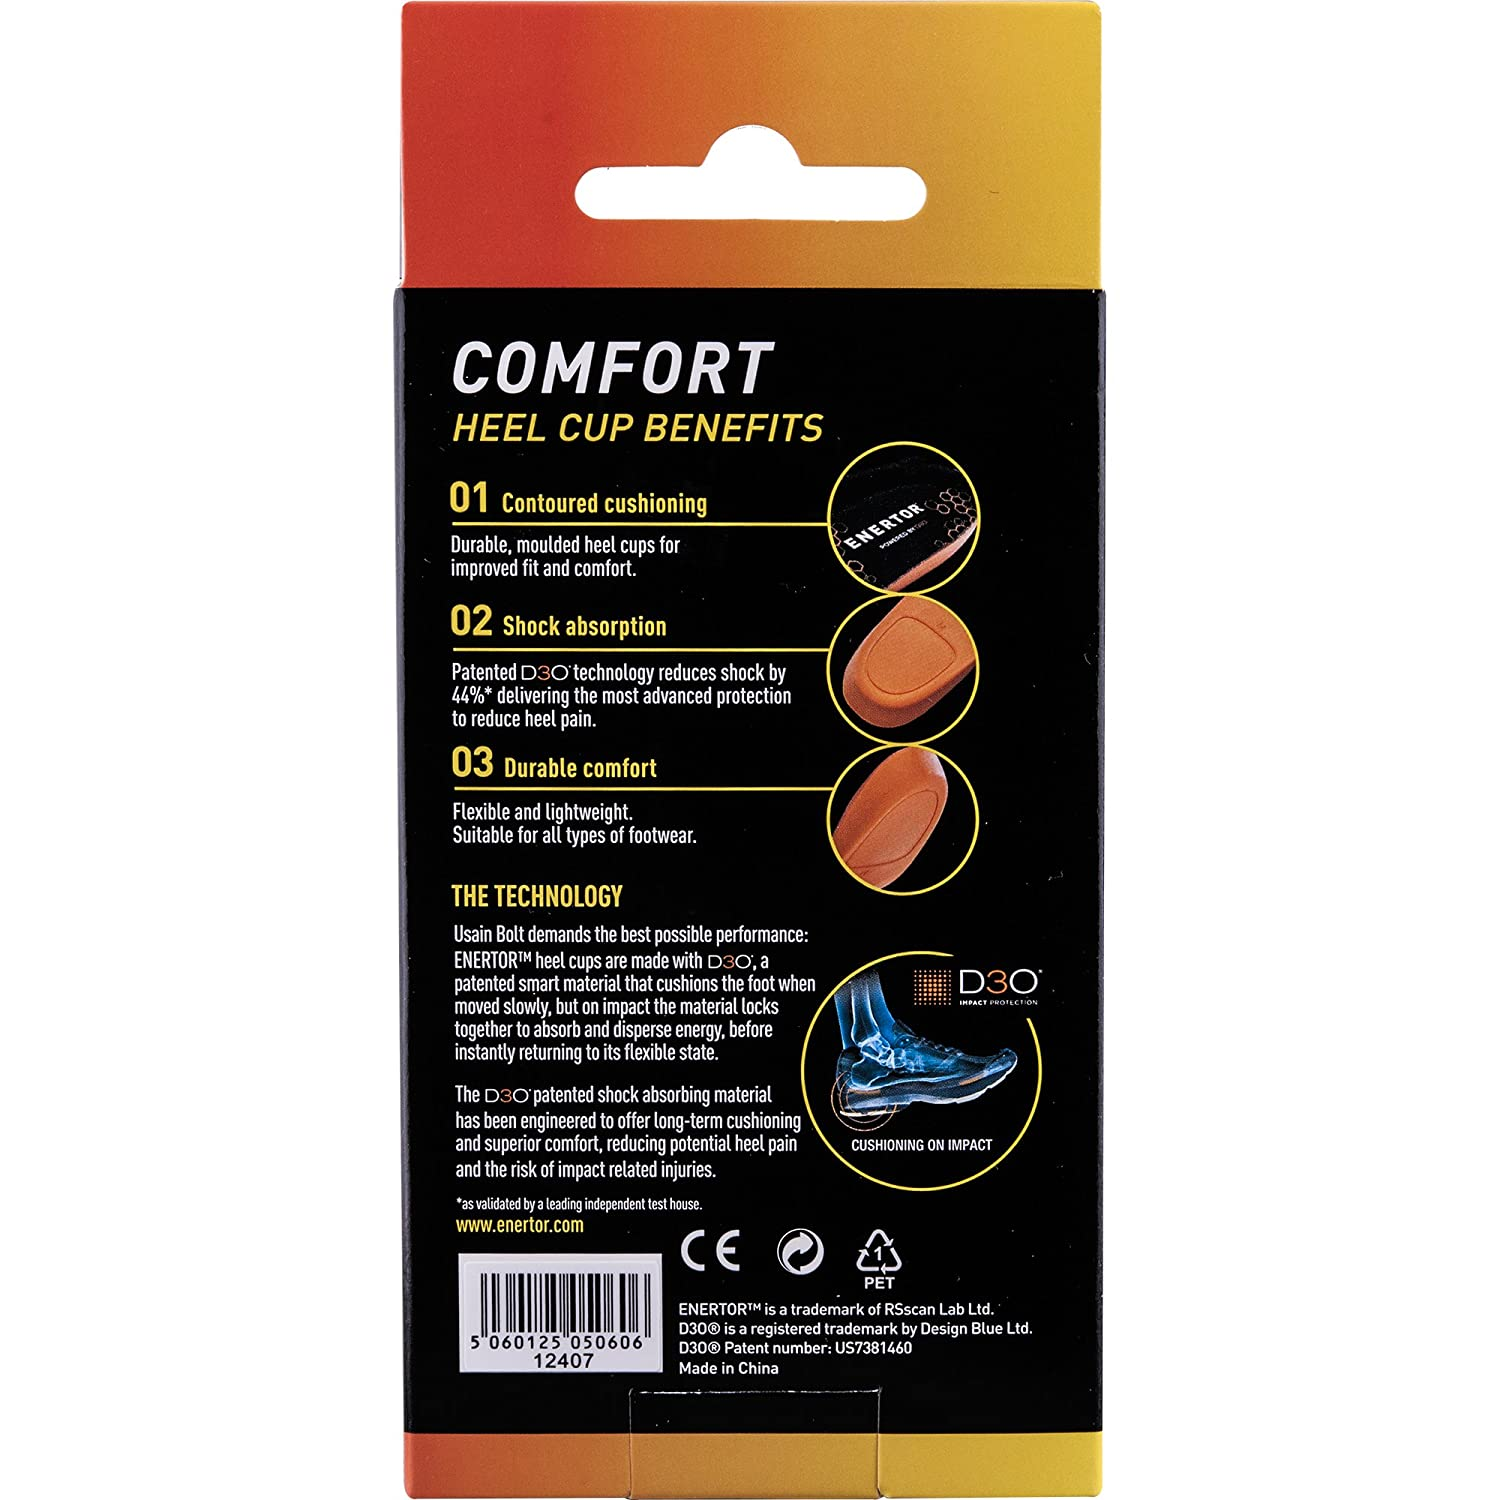 Amazon.com: Enertor Comfort Insole Heel Cup, Large 11-15: Health & Personal Care